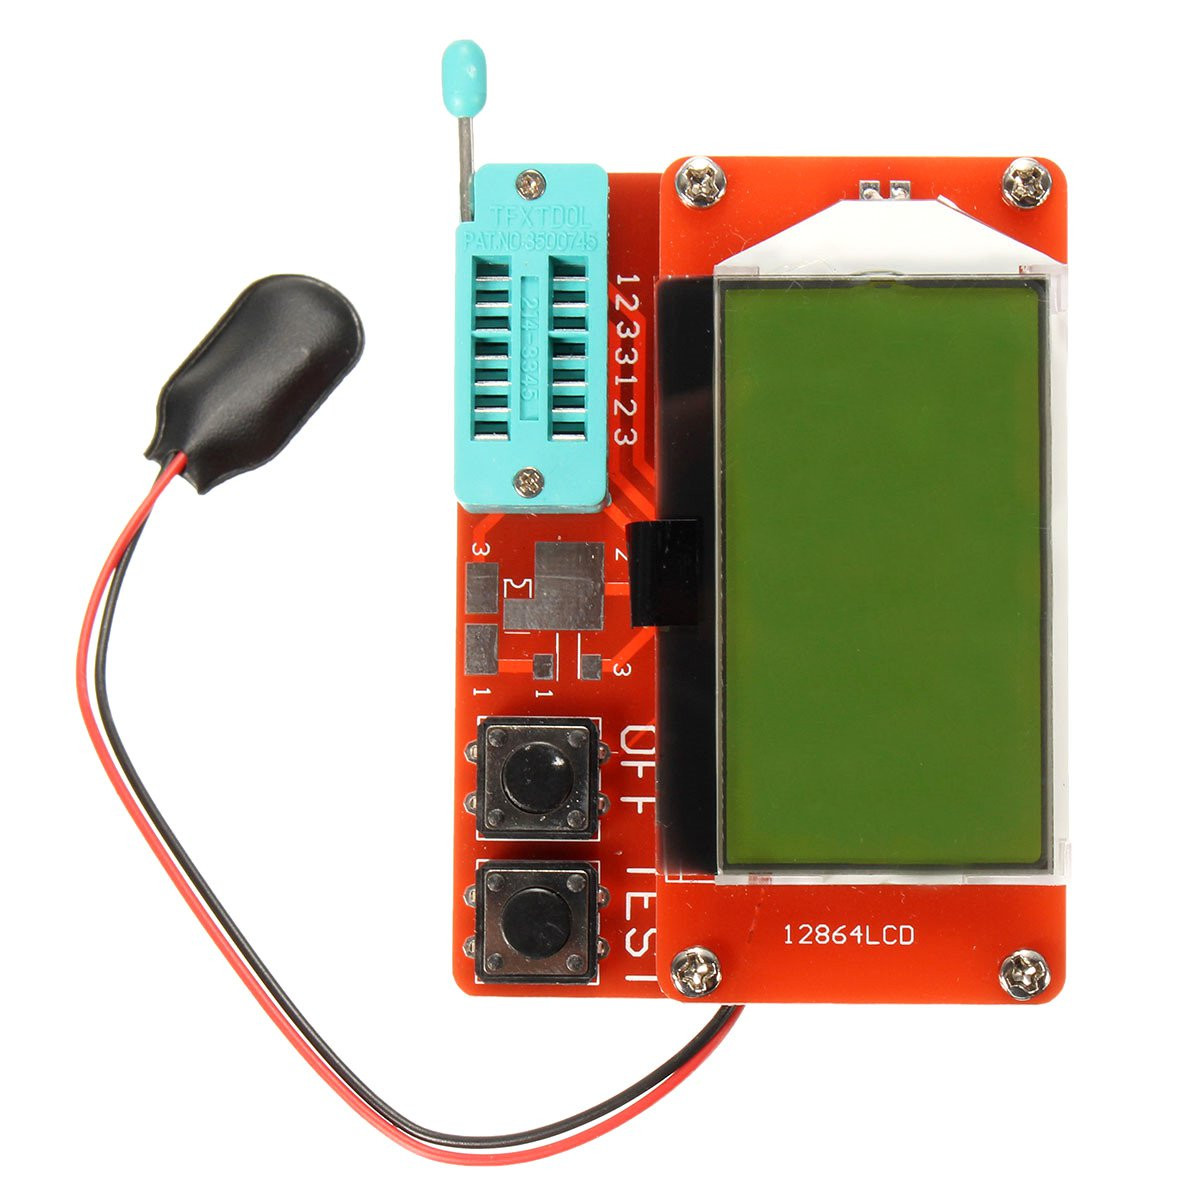 New Electric Component Testers Transistors Diodes Tester Transistor Diode Capacitance ESR Meter Mosfet NPN PNP Inductanc 57x37mm(China (Mainland))